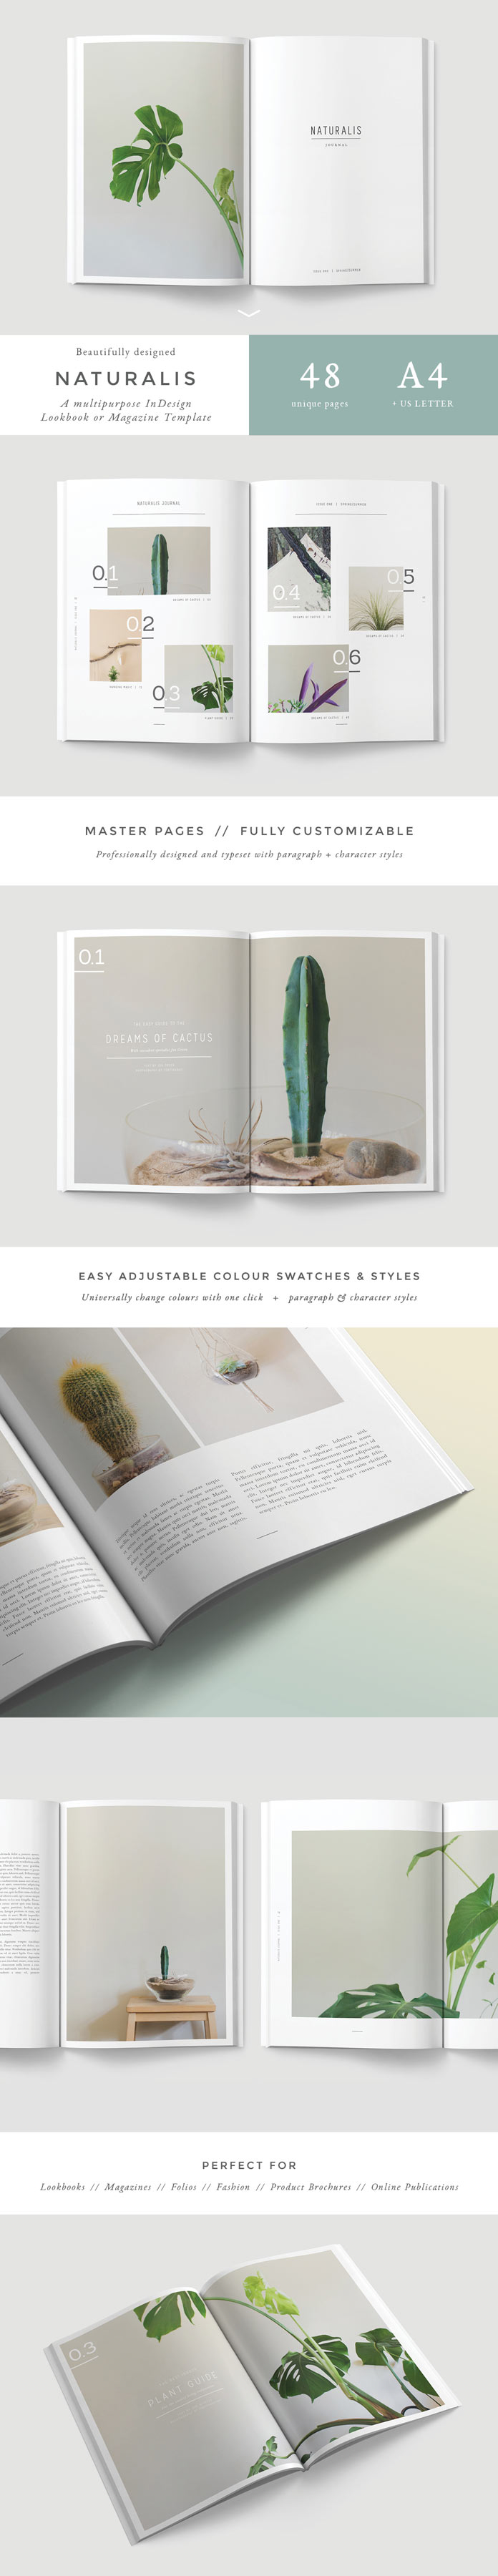 Adobe indesign template for lookbooks and magazines for Adobe indesign magazine templates free download